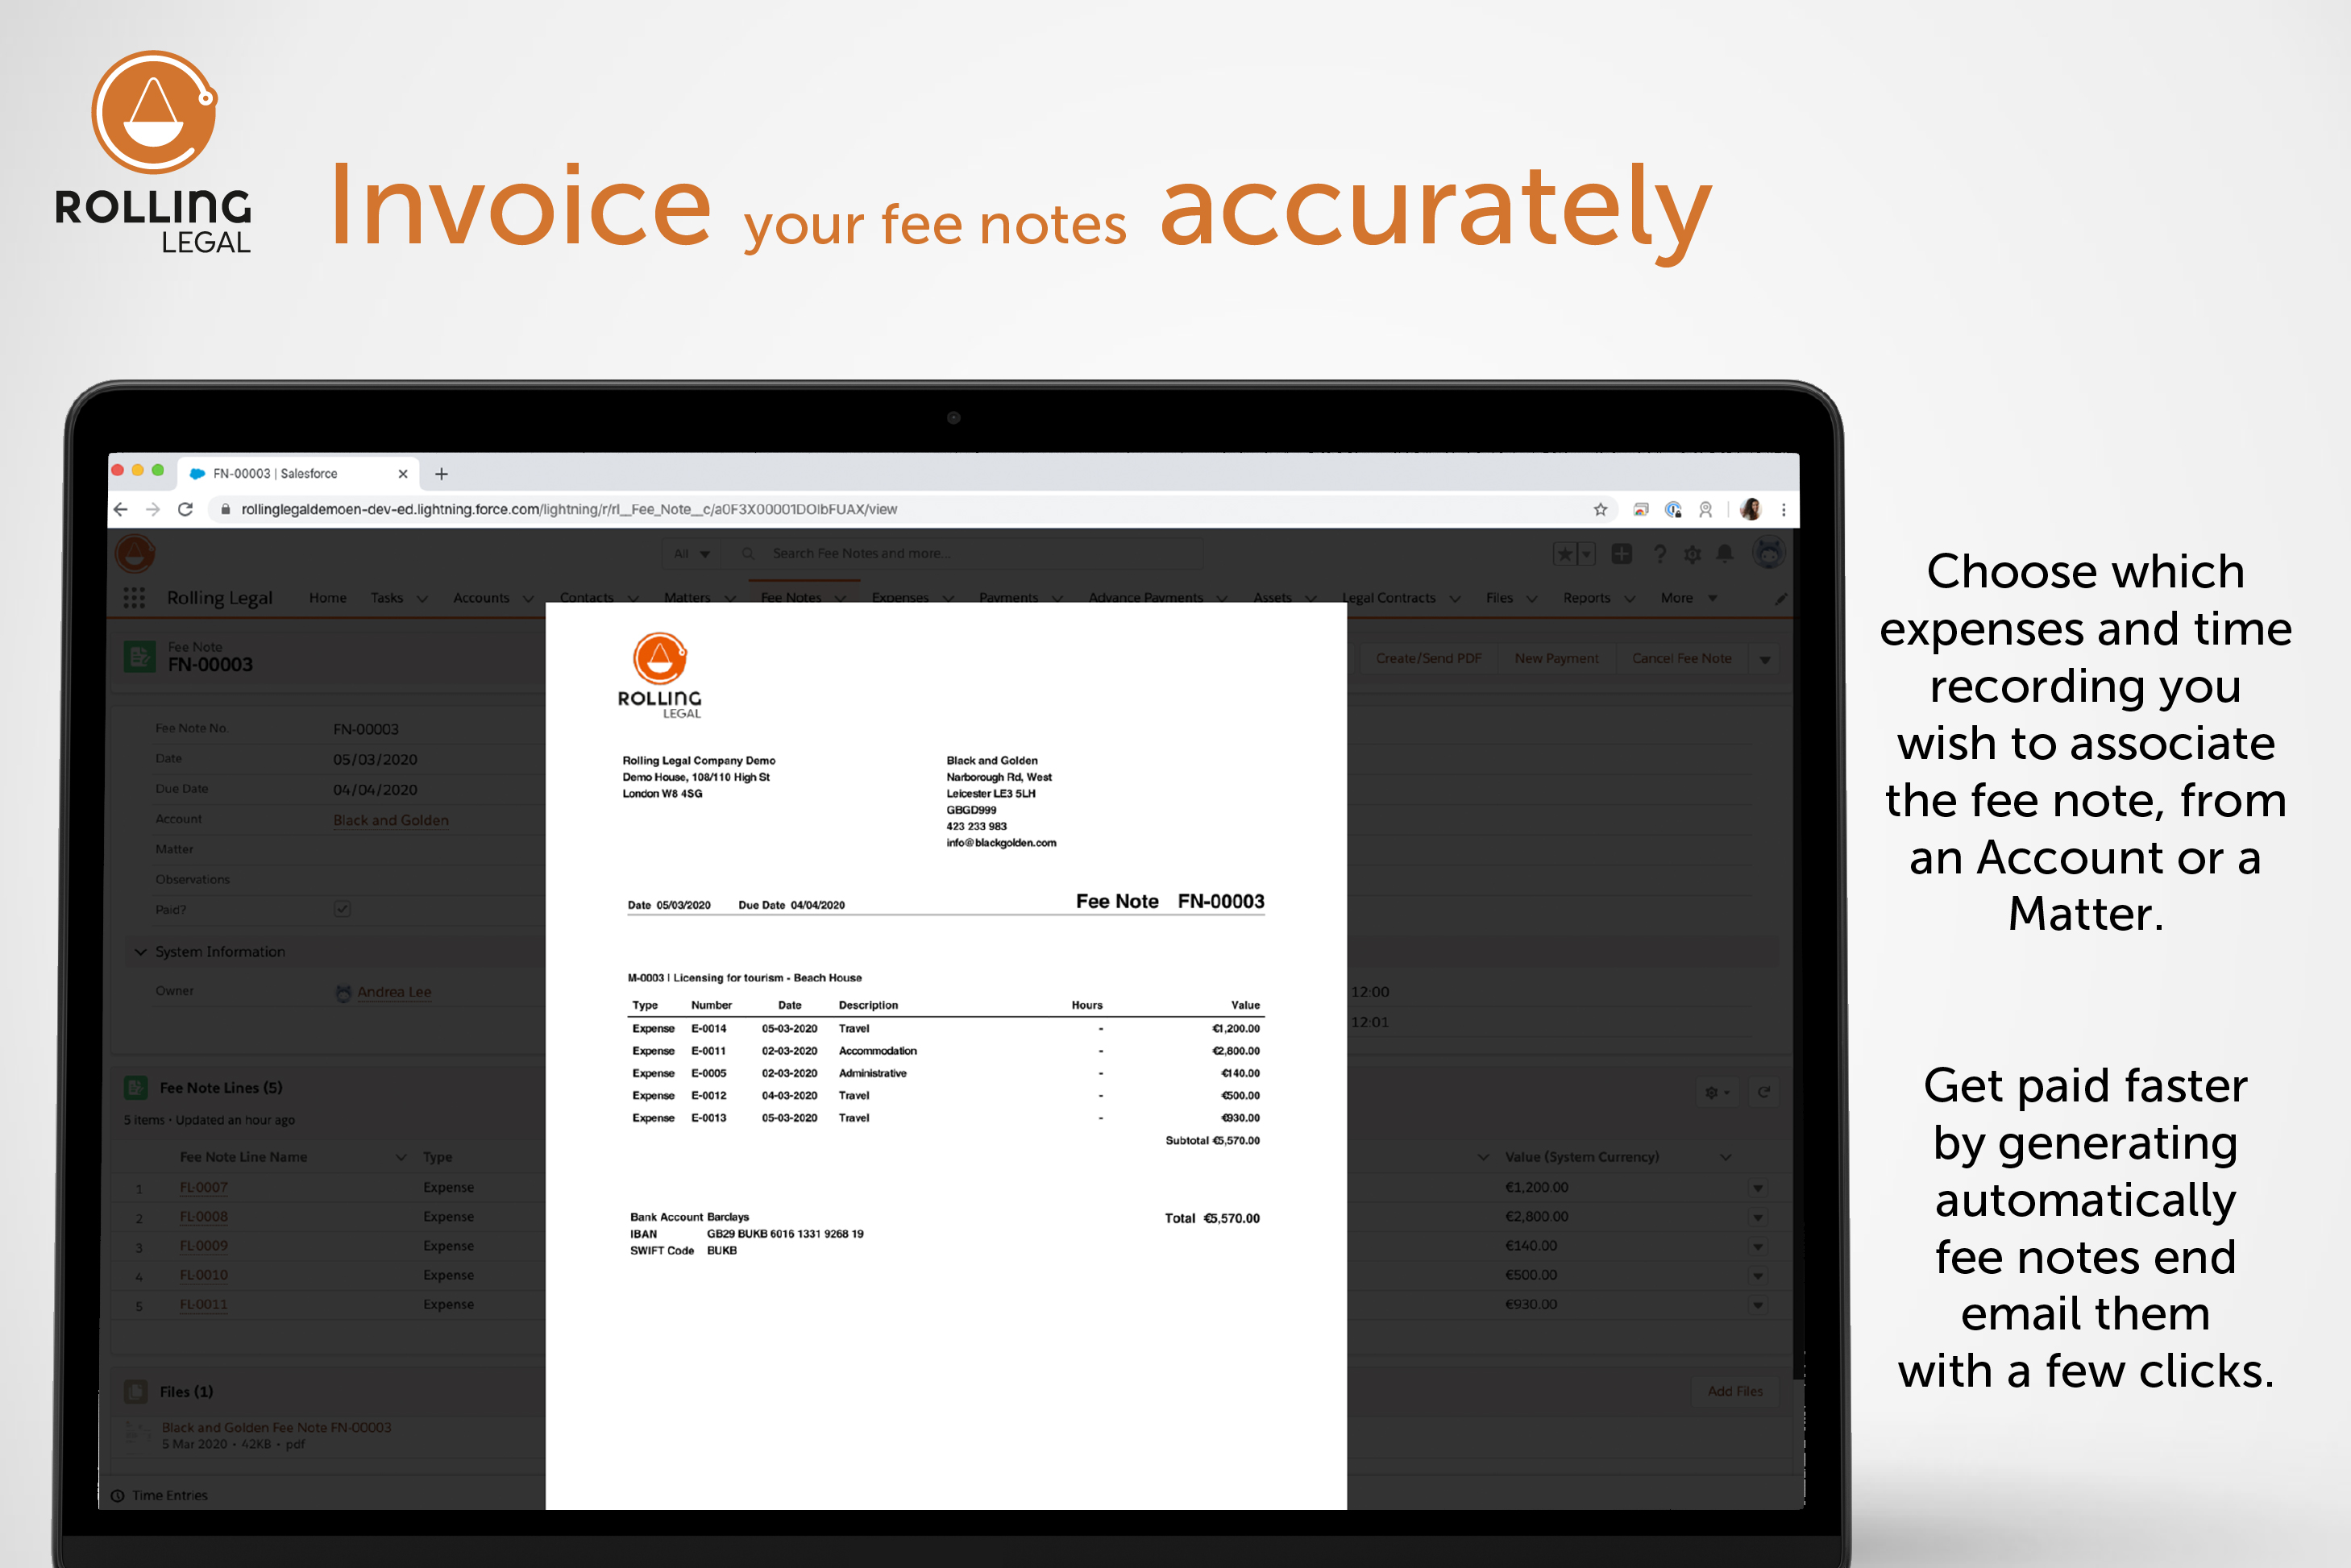 Rolling Legal: Invoice your fee notes accurately!